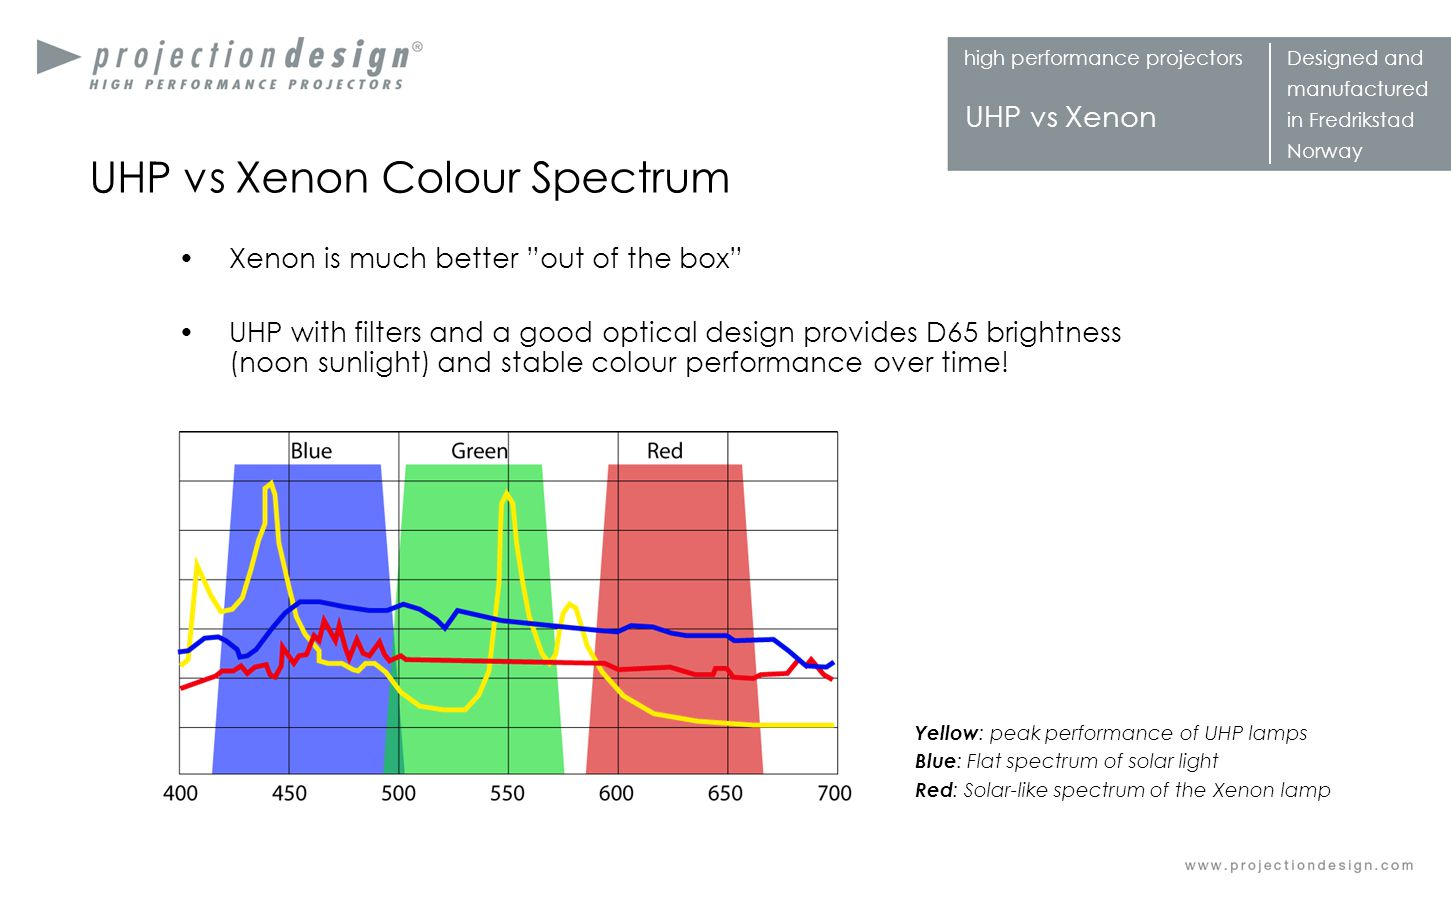 high performance projectorsDesigned and manufactured in Fredrikstad Norway UHP vs Xenon UHP vs Xenon Colour Spectrum Xenon is much better out of the b